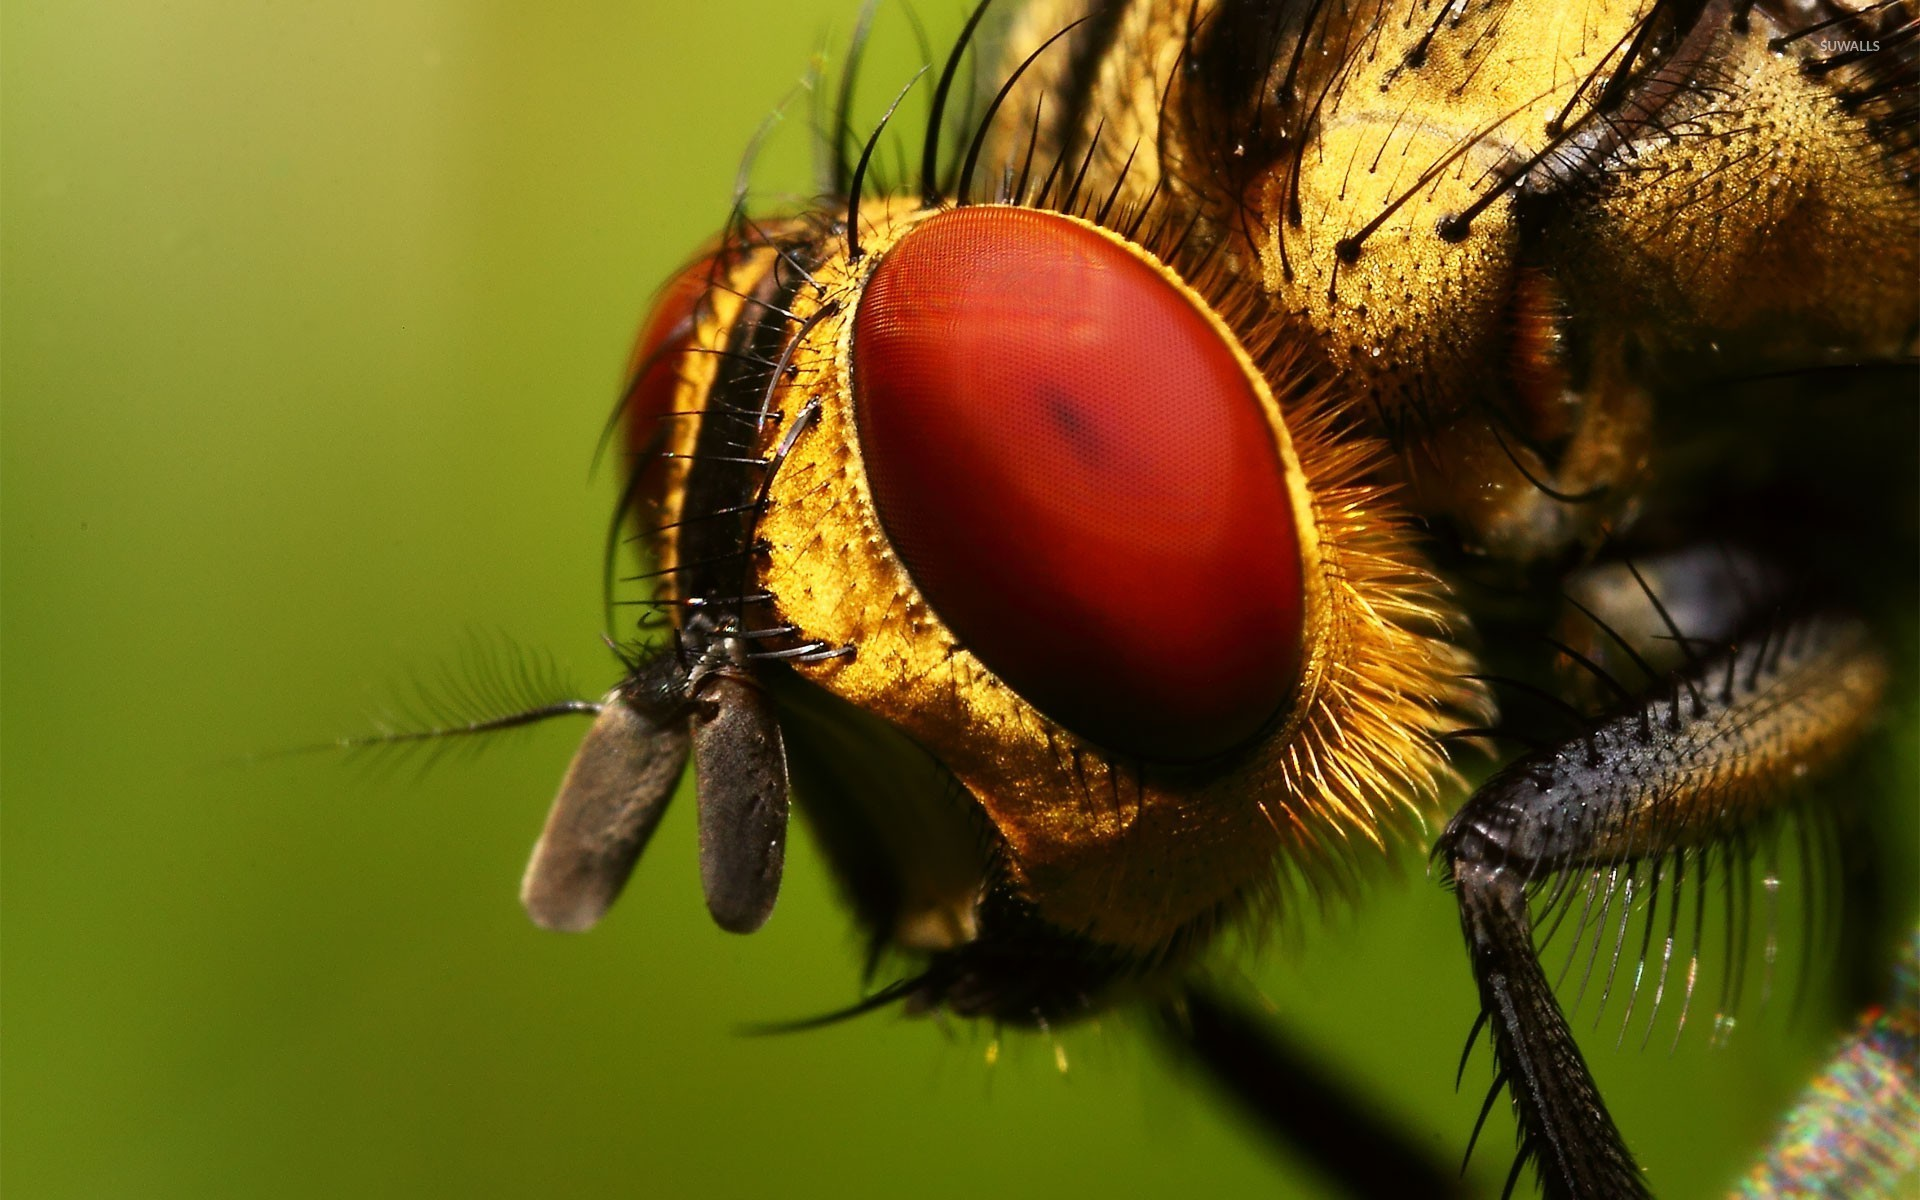 Insect wallpaper   Animal wallpapers   18389 1920x1200